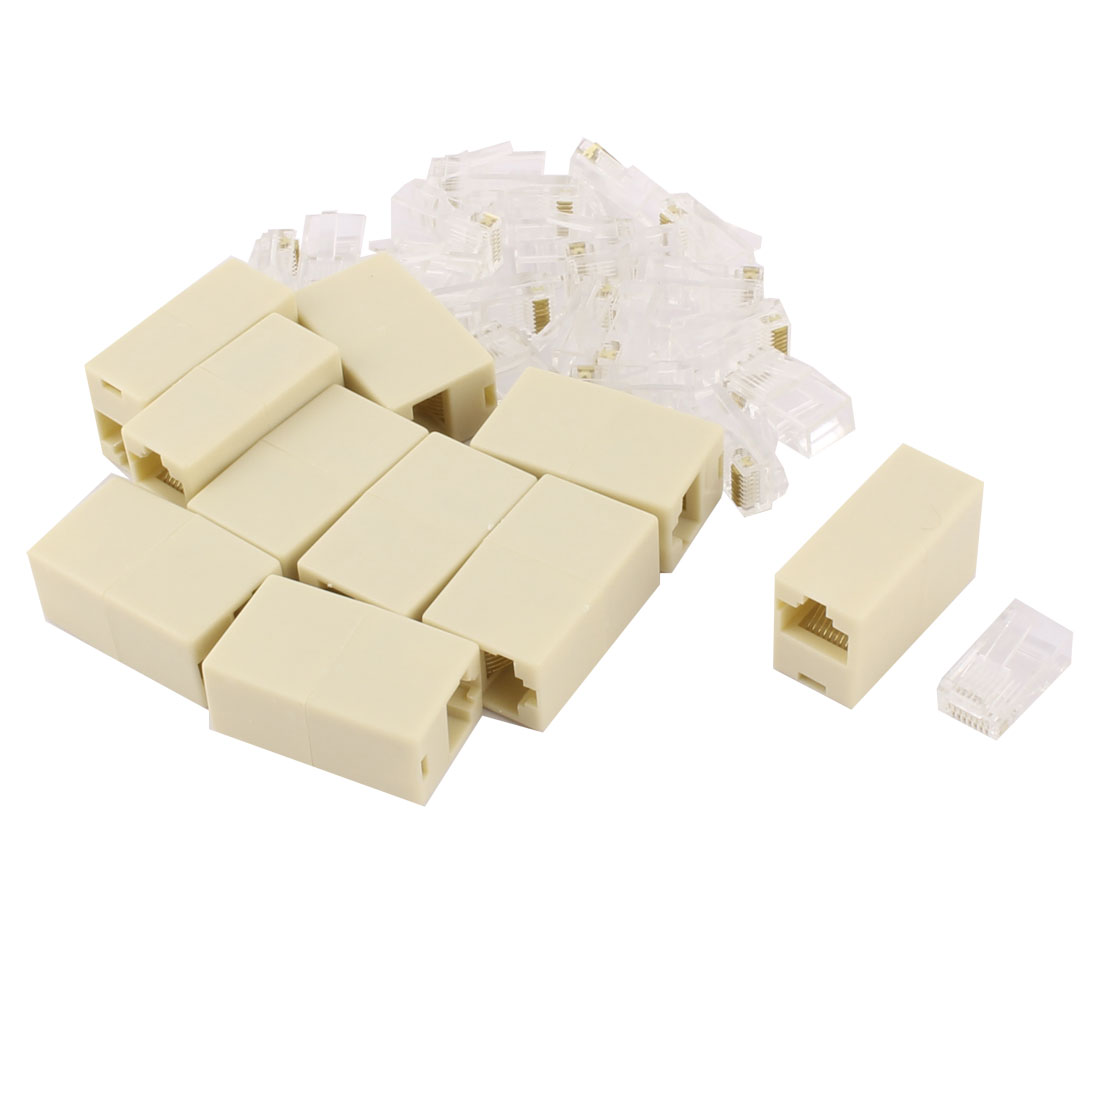 RJ45 8P8C CAT5e Male Connector Female to Female Adapter Coupler Set 30 in 1